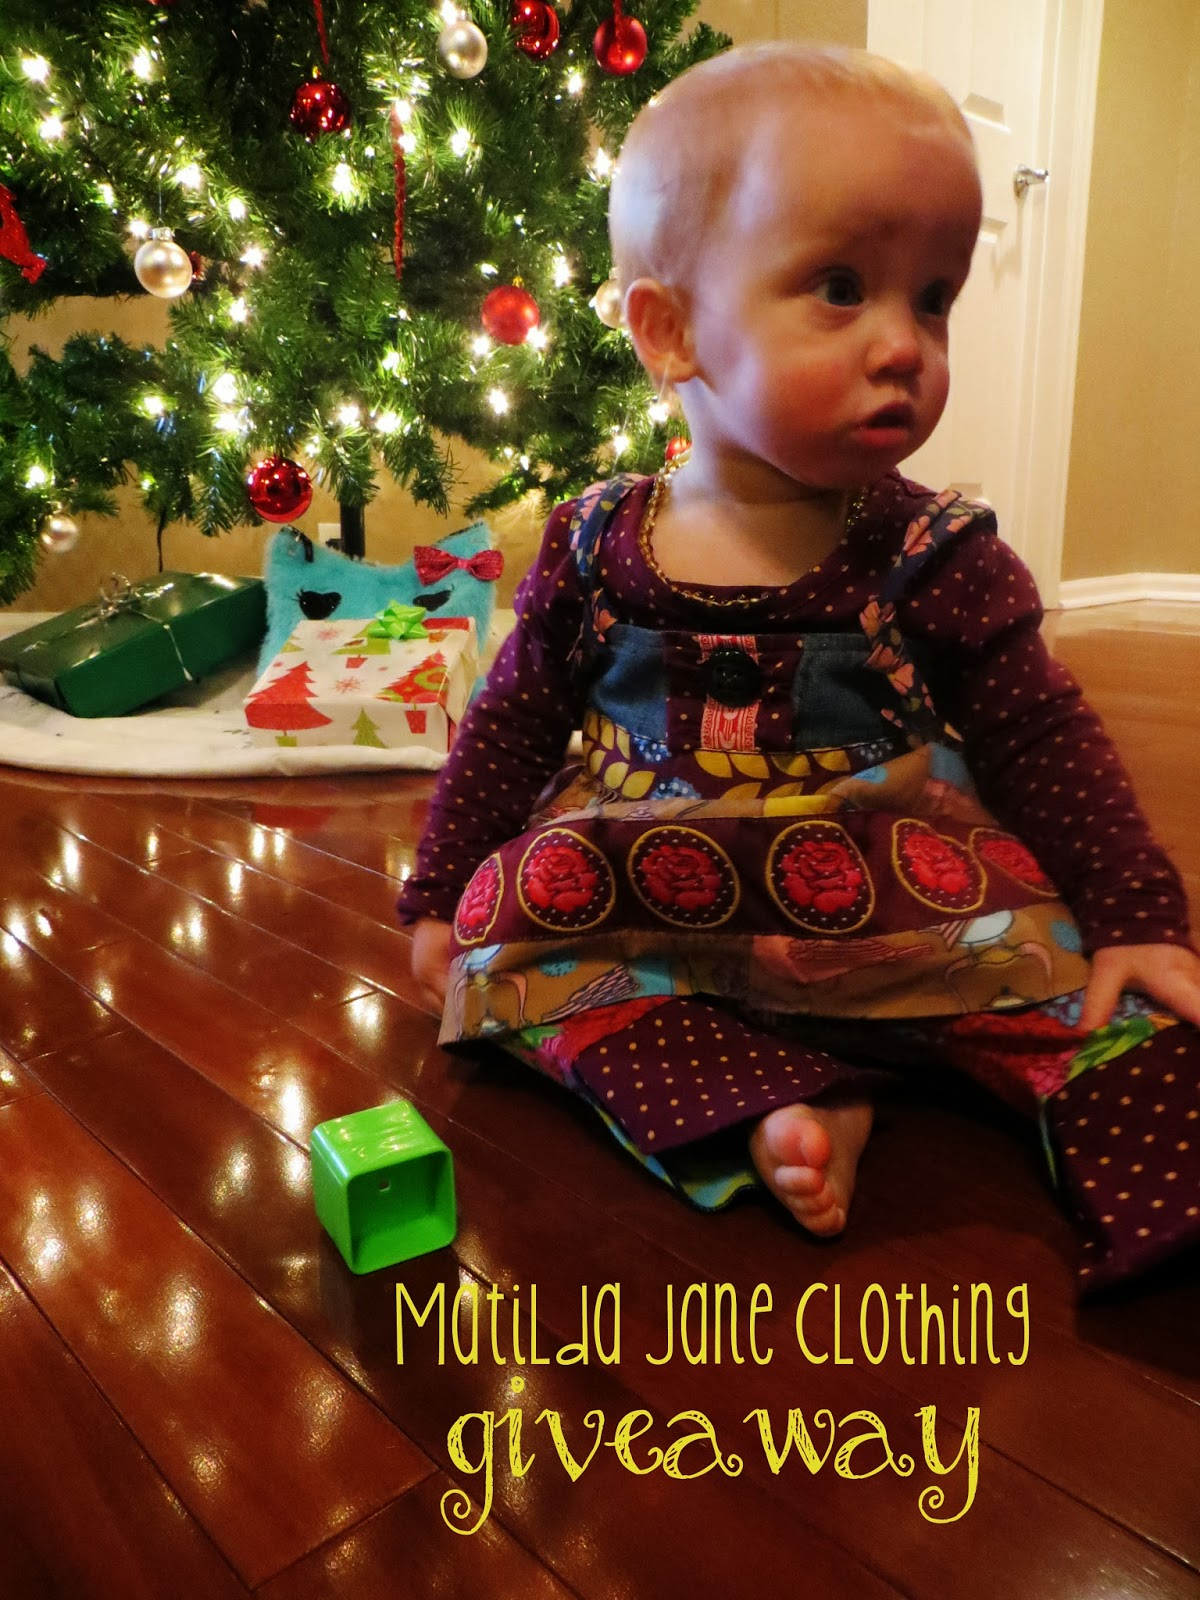 #Win $50 to the trendy, whimsy Matilda Jane Clothing company! Their designs are youthful, playful and expressive. #babyfashion #trendybaby